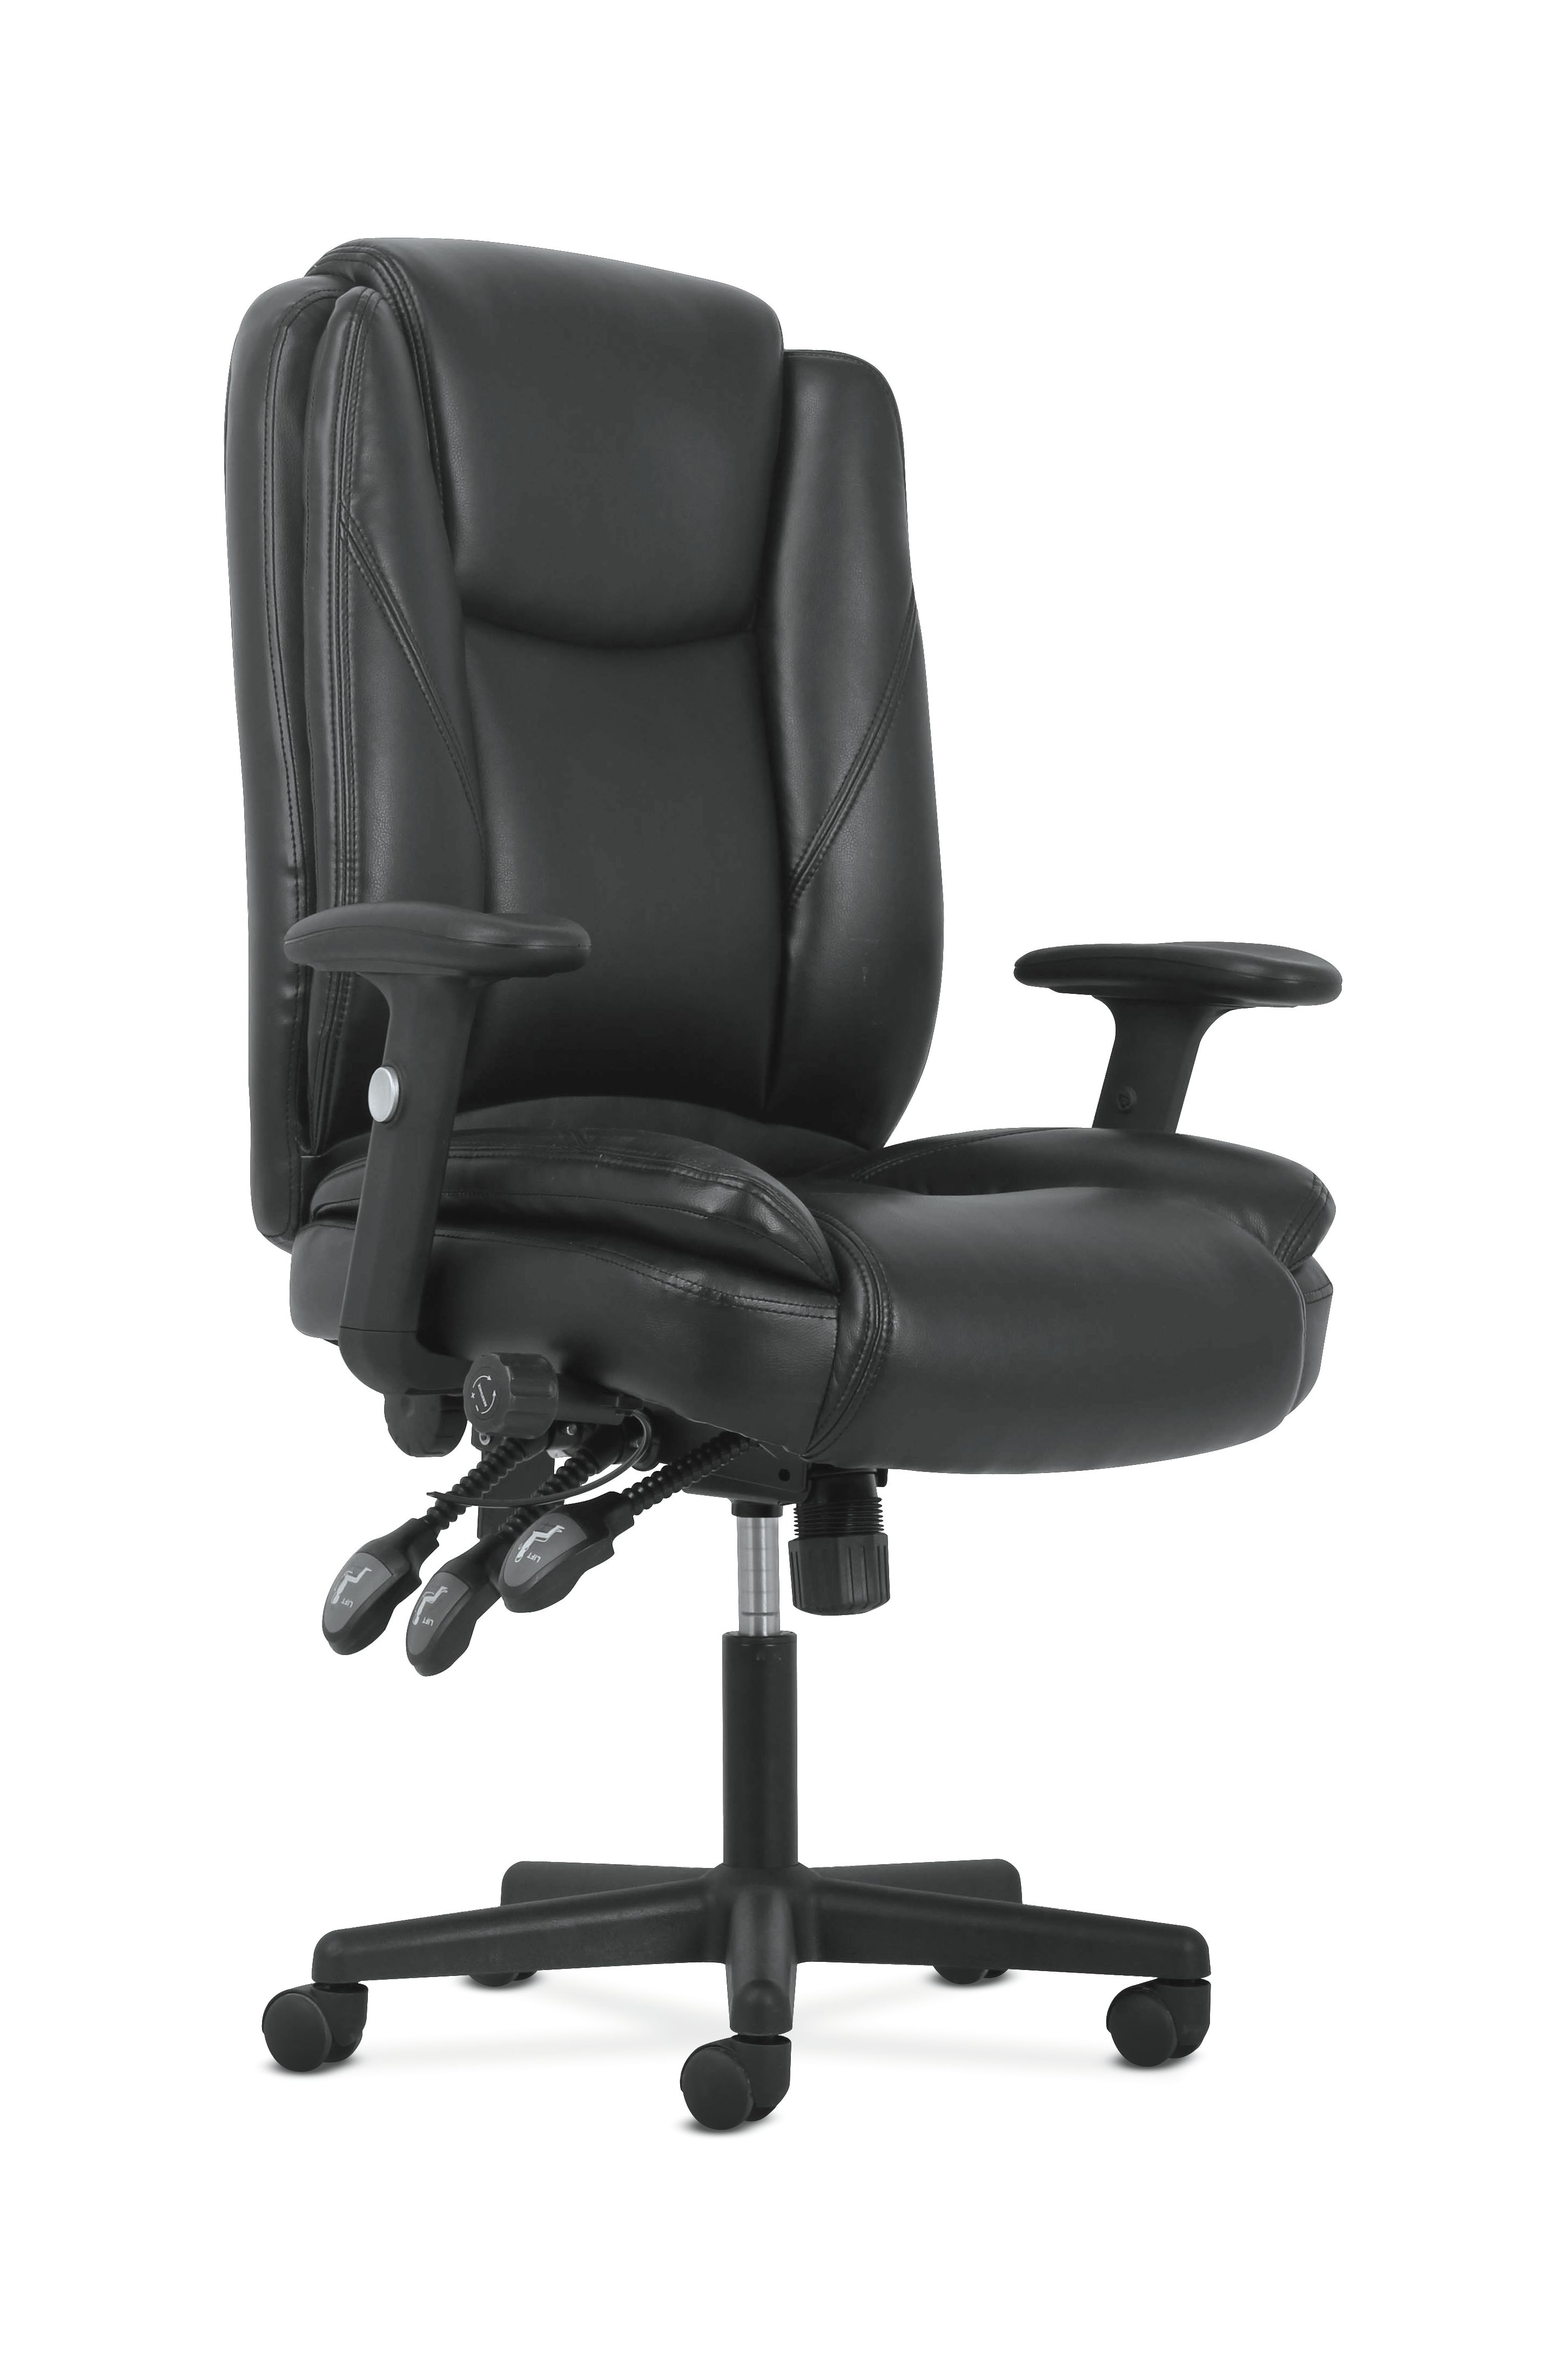 Sadie high back leather office computer chair ergonomic adjustable swivel chair with lumbar